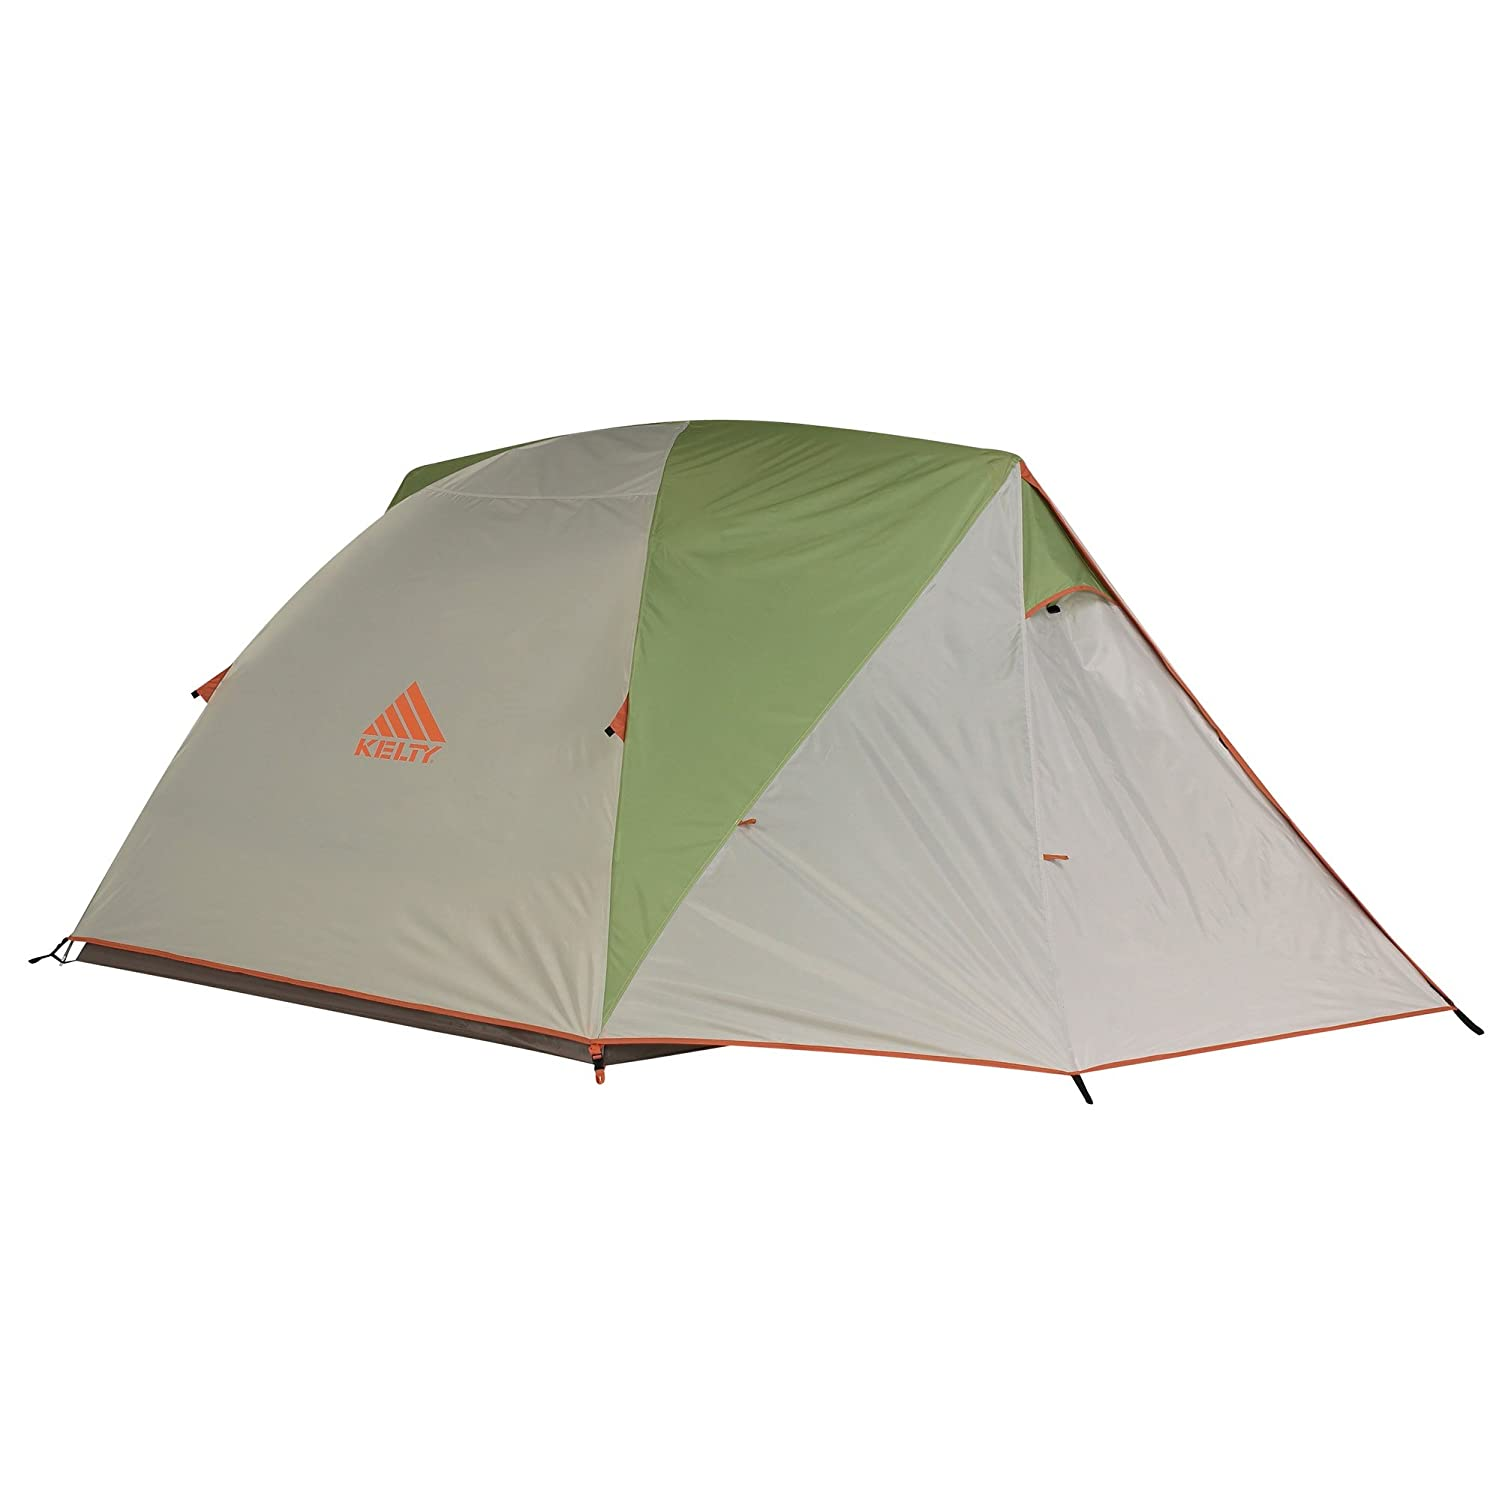 air mountaineering tri tents furniture awning pdf bags beds alps pads poles catalog sleeping catalogs online trekking packs mats